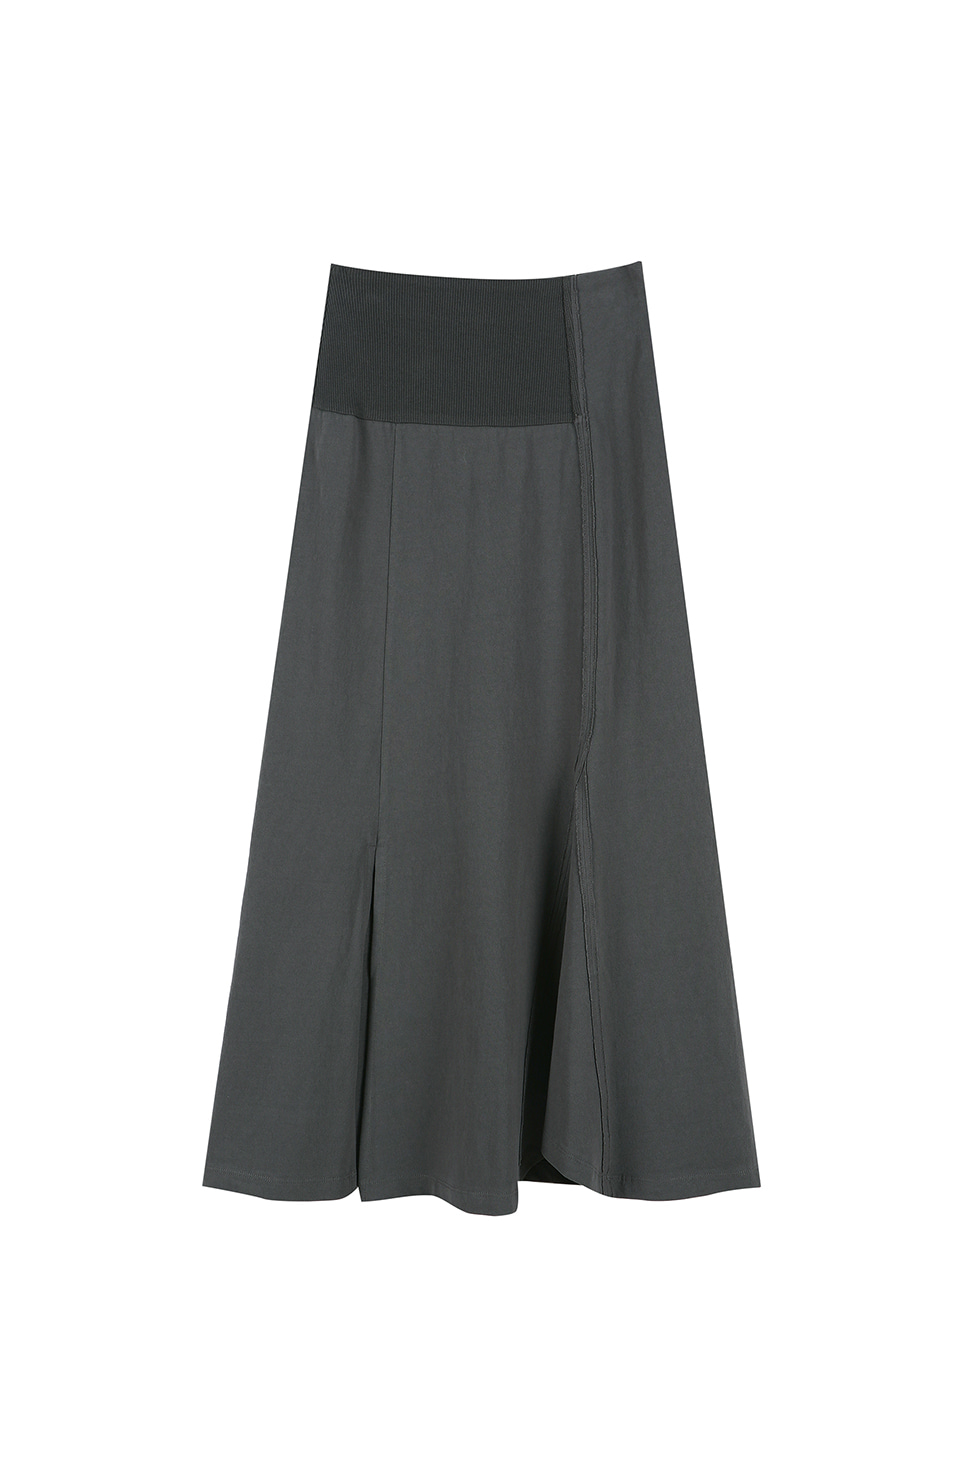 UNBALANCE JERSEY SKIRT - GREY